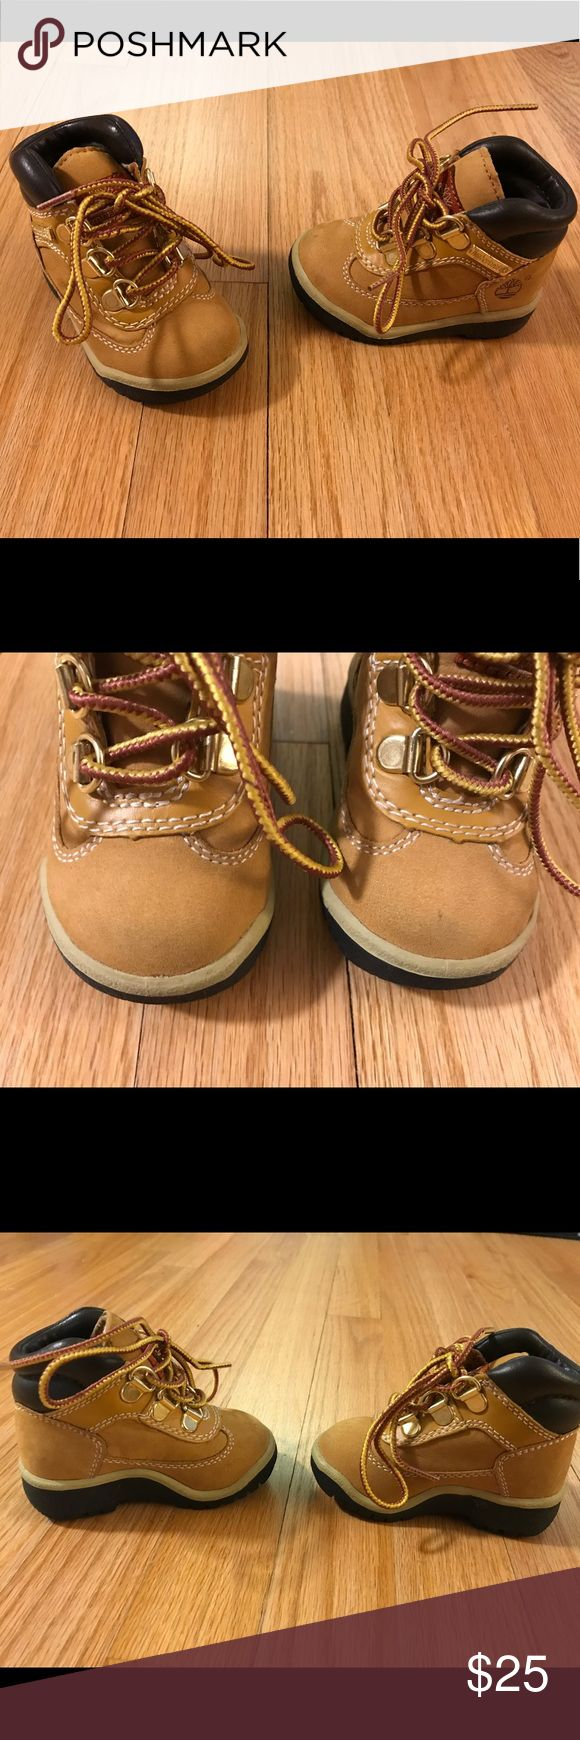 Infant Timberland Field boot Just adorable! Gently worn (3 times), infant field boot in size 4. Timberland Shoes Boots